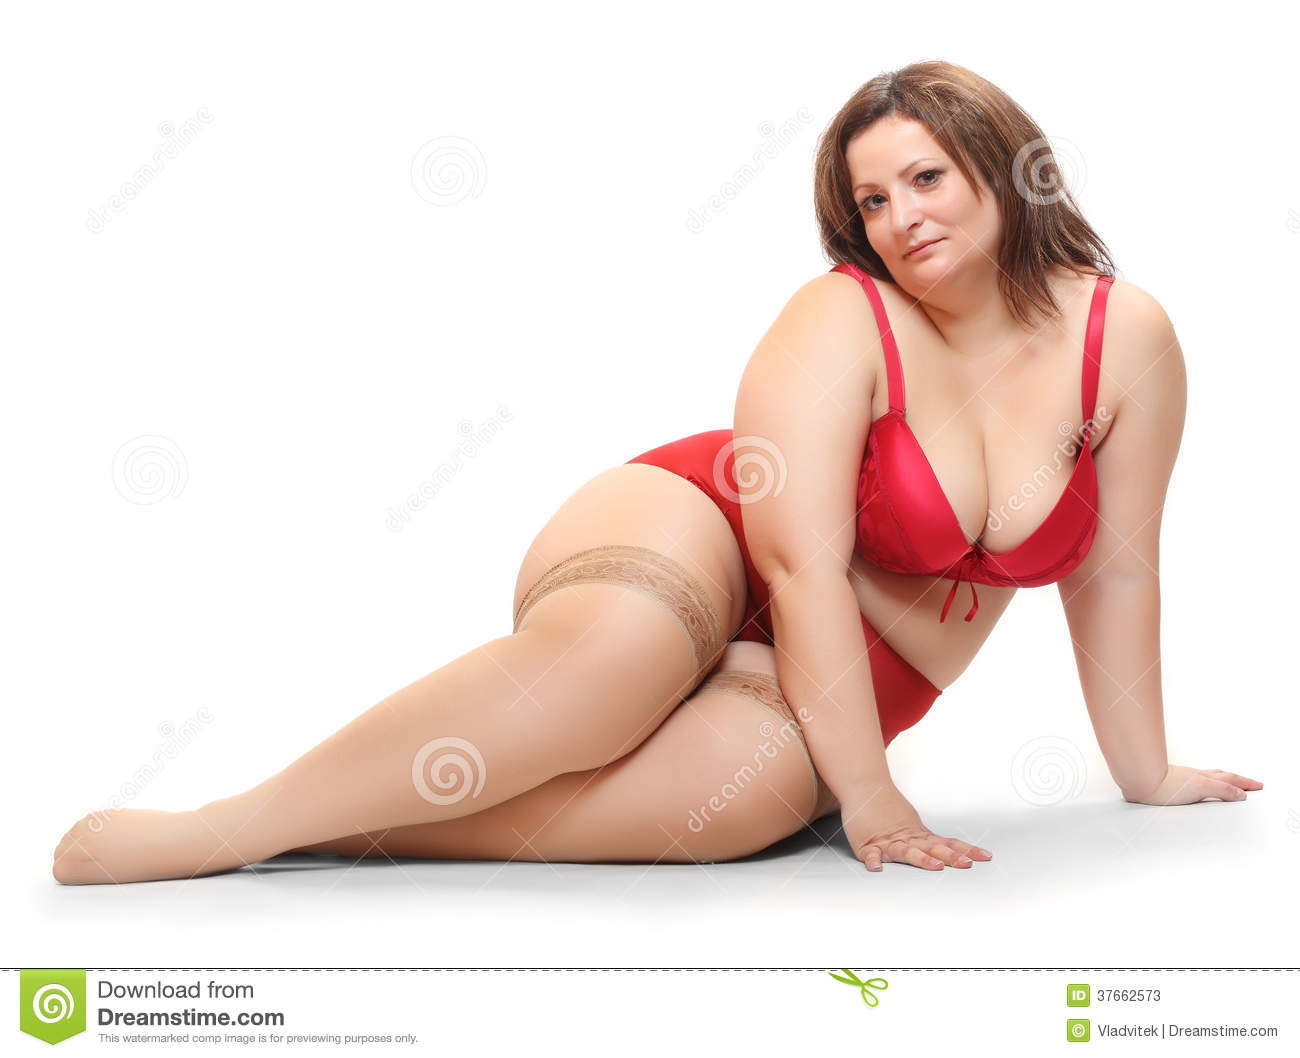 Erotic pictures larger women